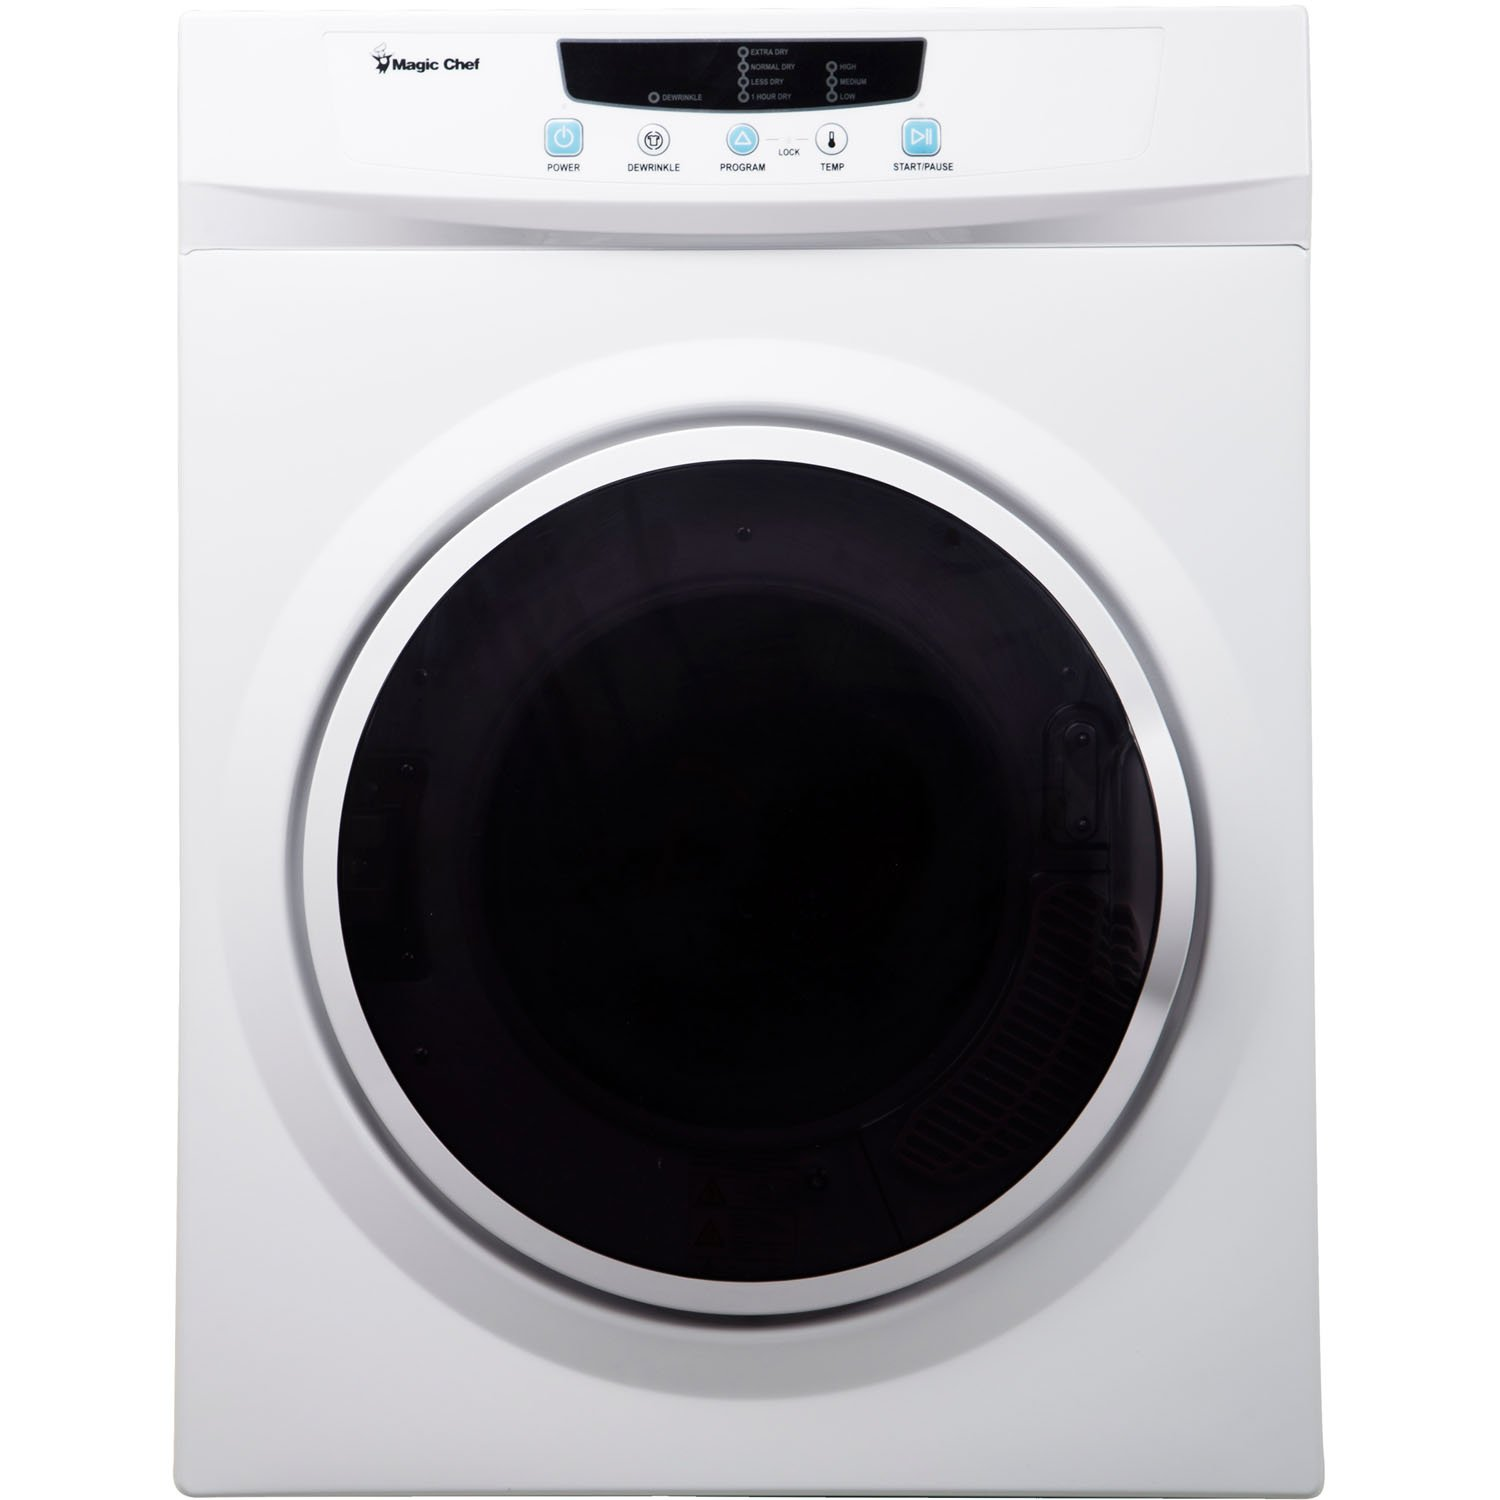 Magic Chef MCSDRY35W 3.5 cu. ft. Laundry Dryer, White MC Appliance Corporation